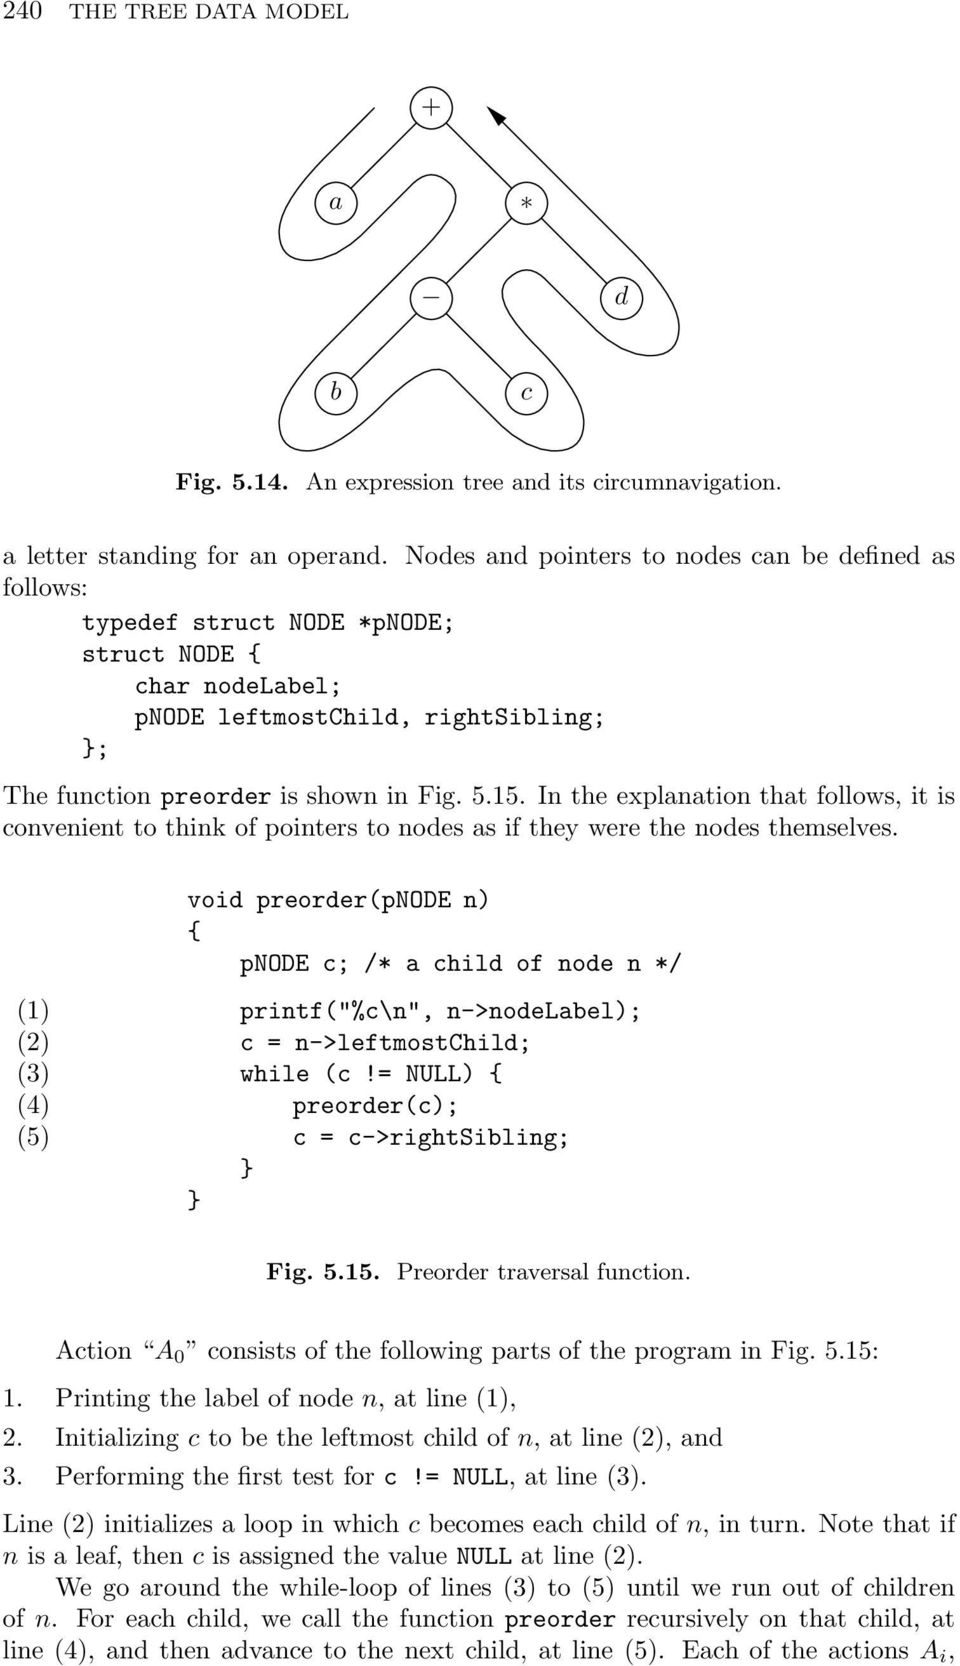 In the explanation that follows, it is convenient to think of pointers to nodes as if they were the nodes themselves.